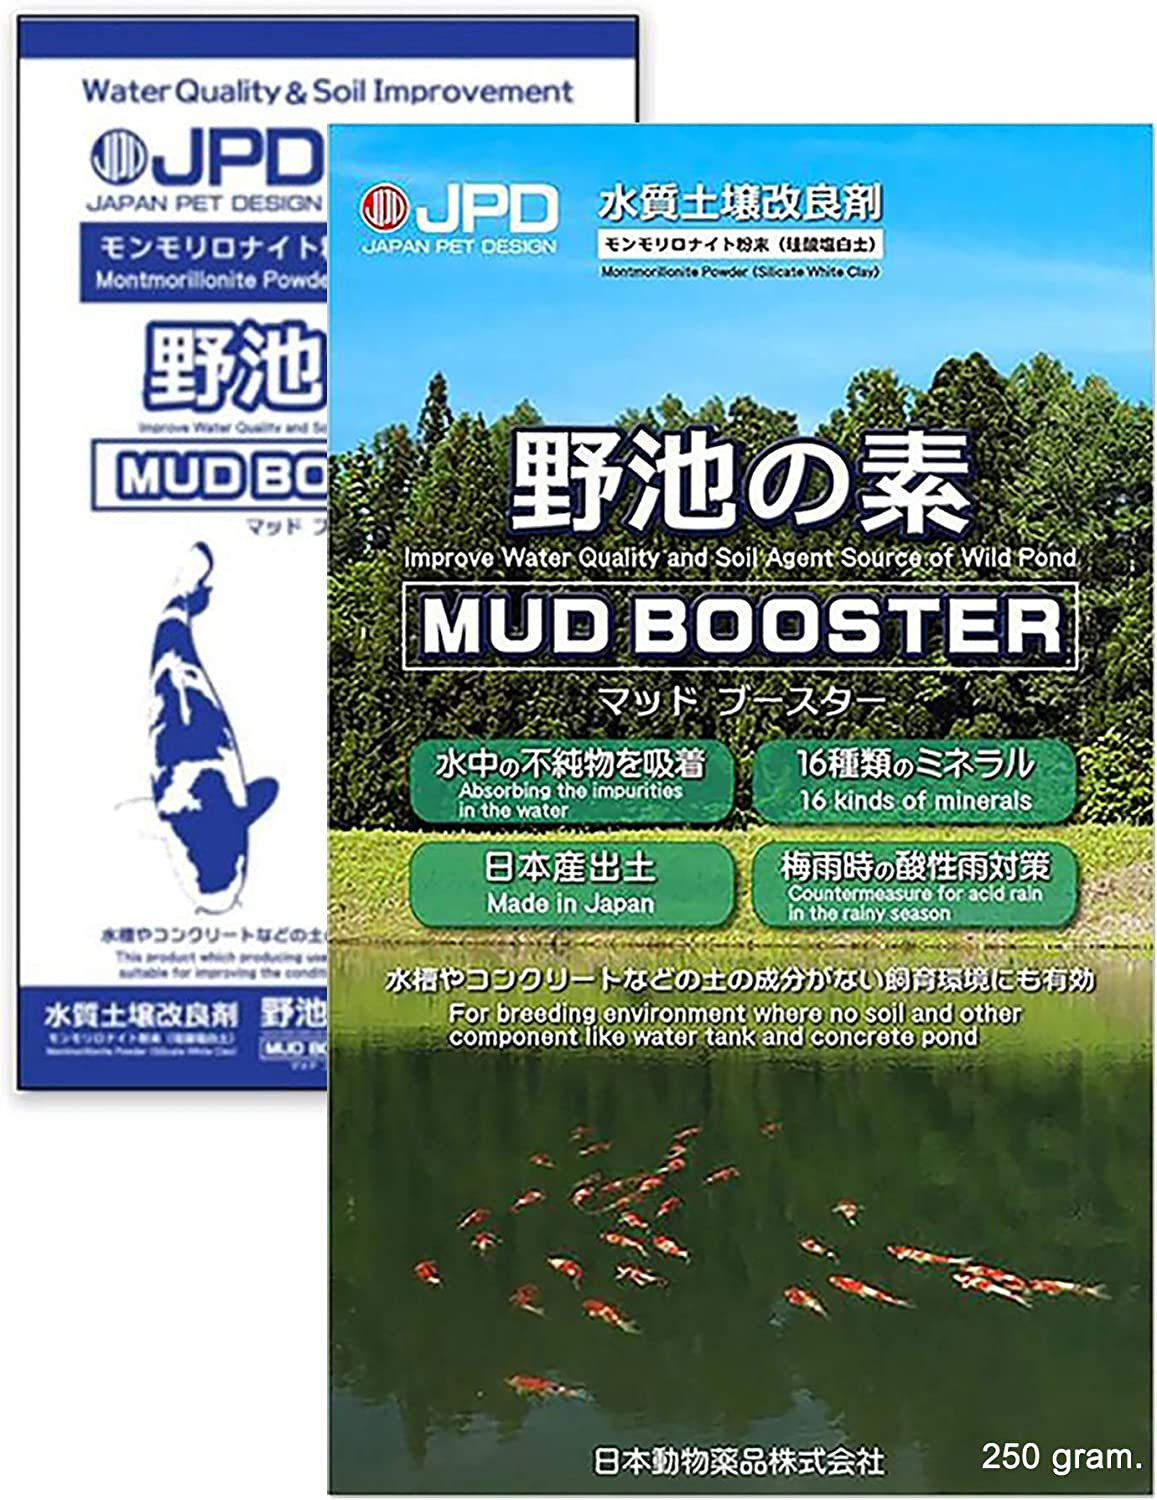 HULX Mud Booster Raising Fish at Home to Be Natural Like Raising Pond in Japan Fish Care Water Conditioner Treatment & Color Enhancer for Koi, Goldfish, Tropical Fish & All Fish Type 250 g. Fish Food